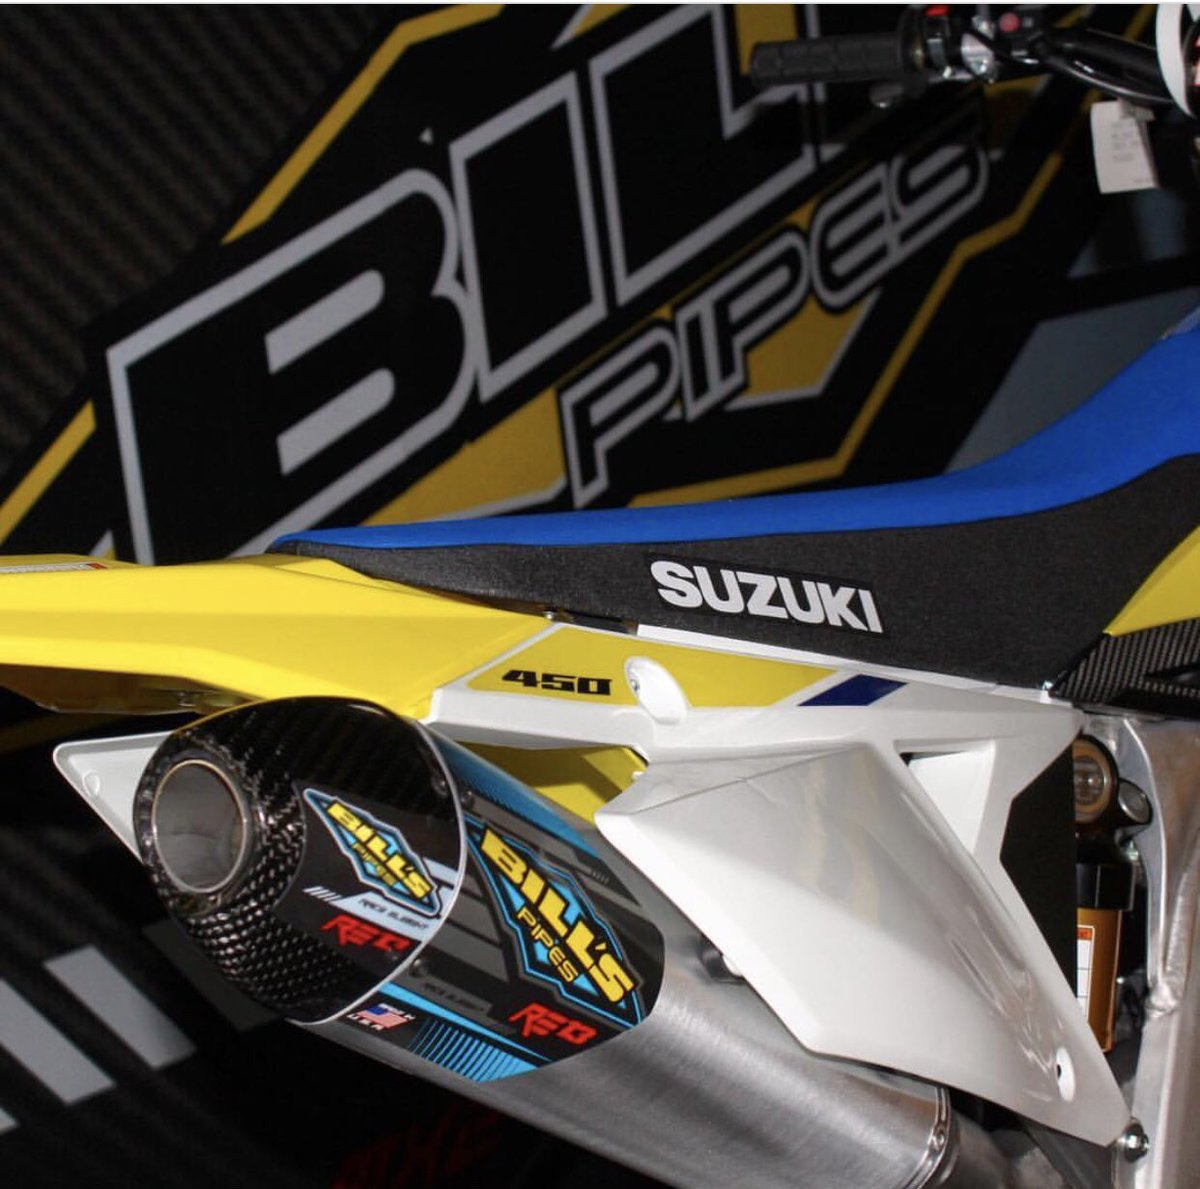 A1 can come soon enough! #RMZ450 #billspipes #RE13 🔥🔥@HEP_motorsports